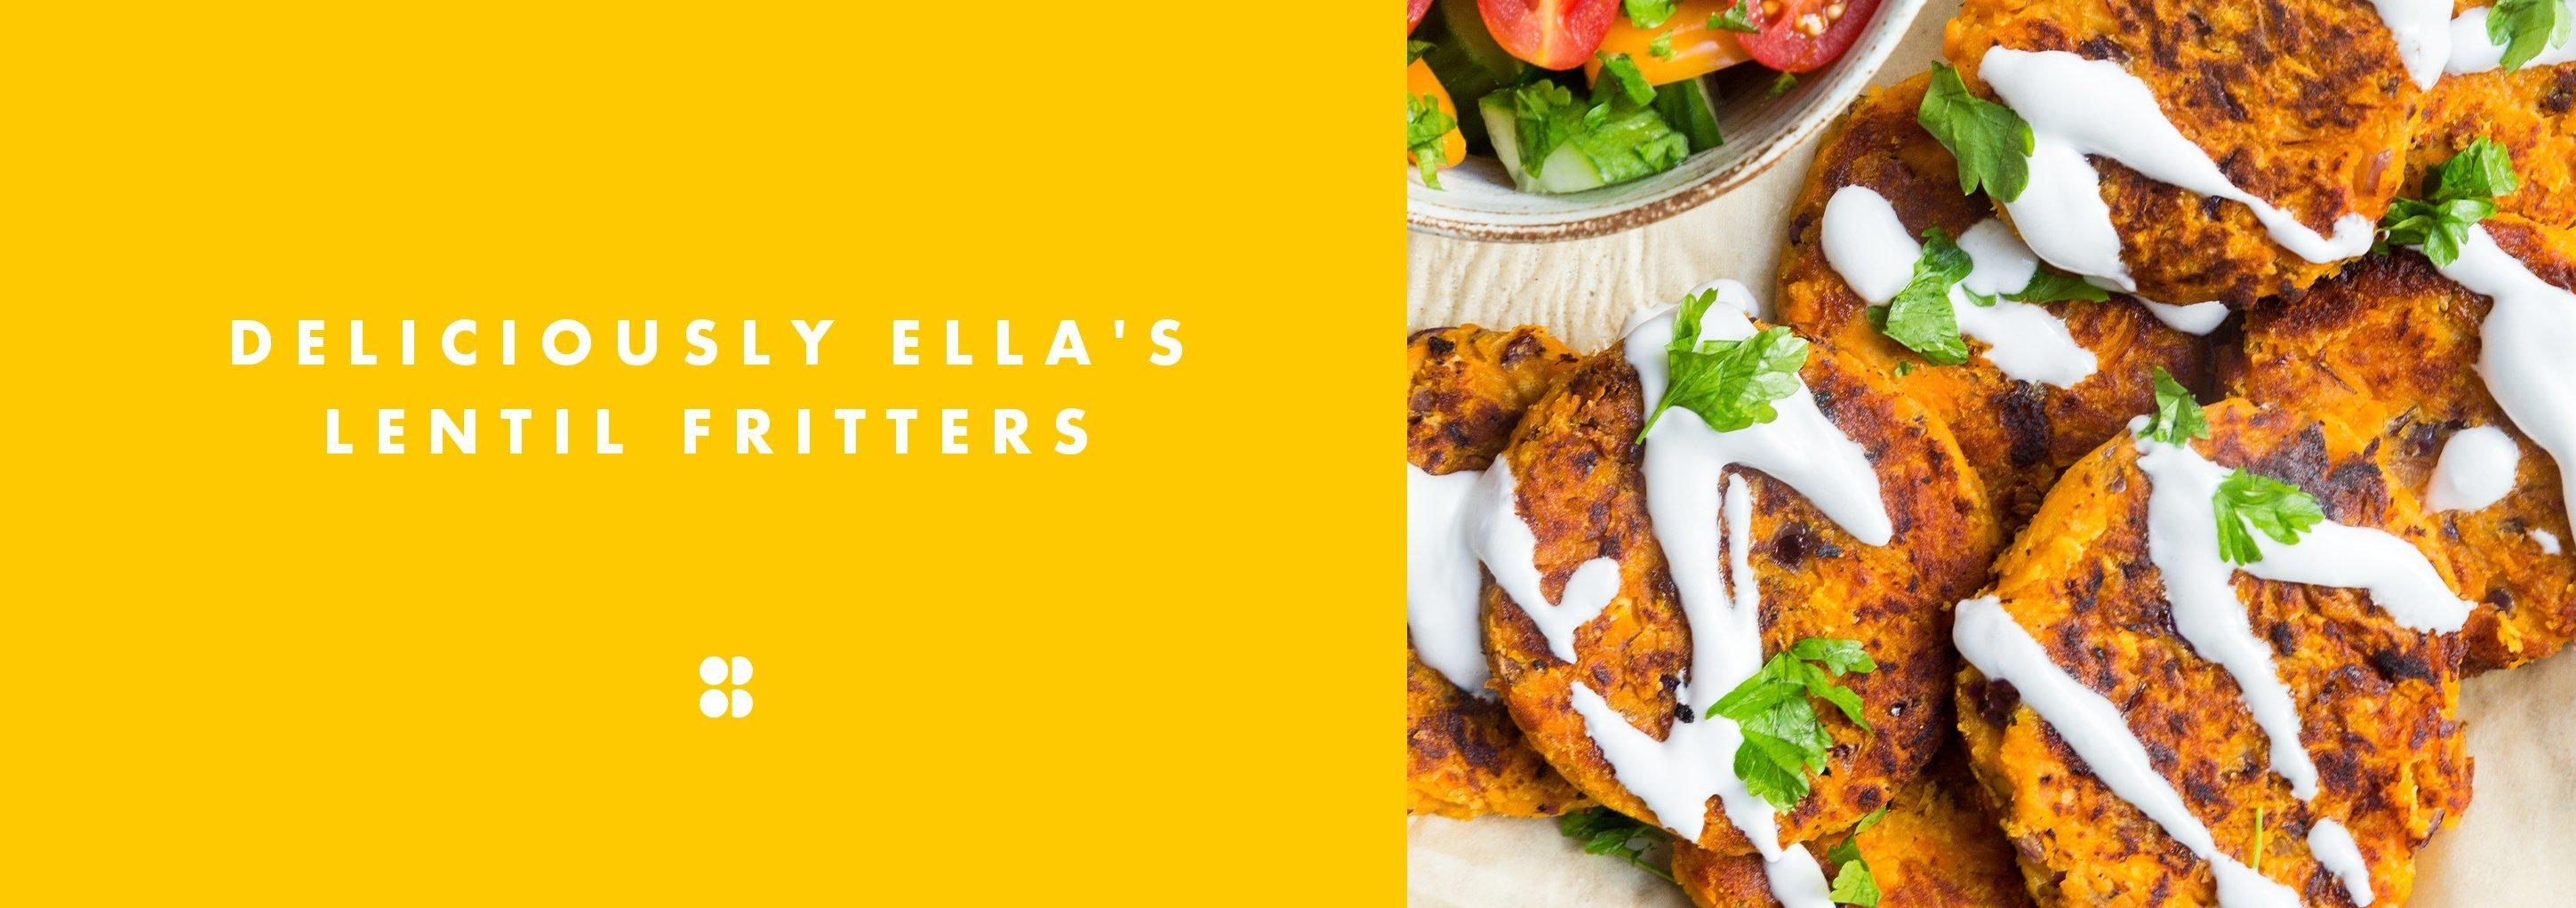 Deliciously Ella's Red Lentil Fritters